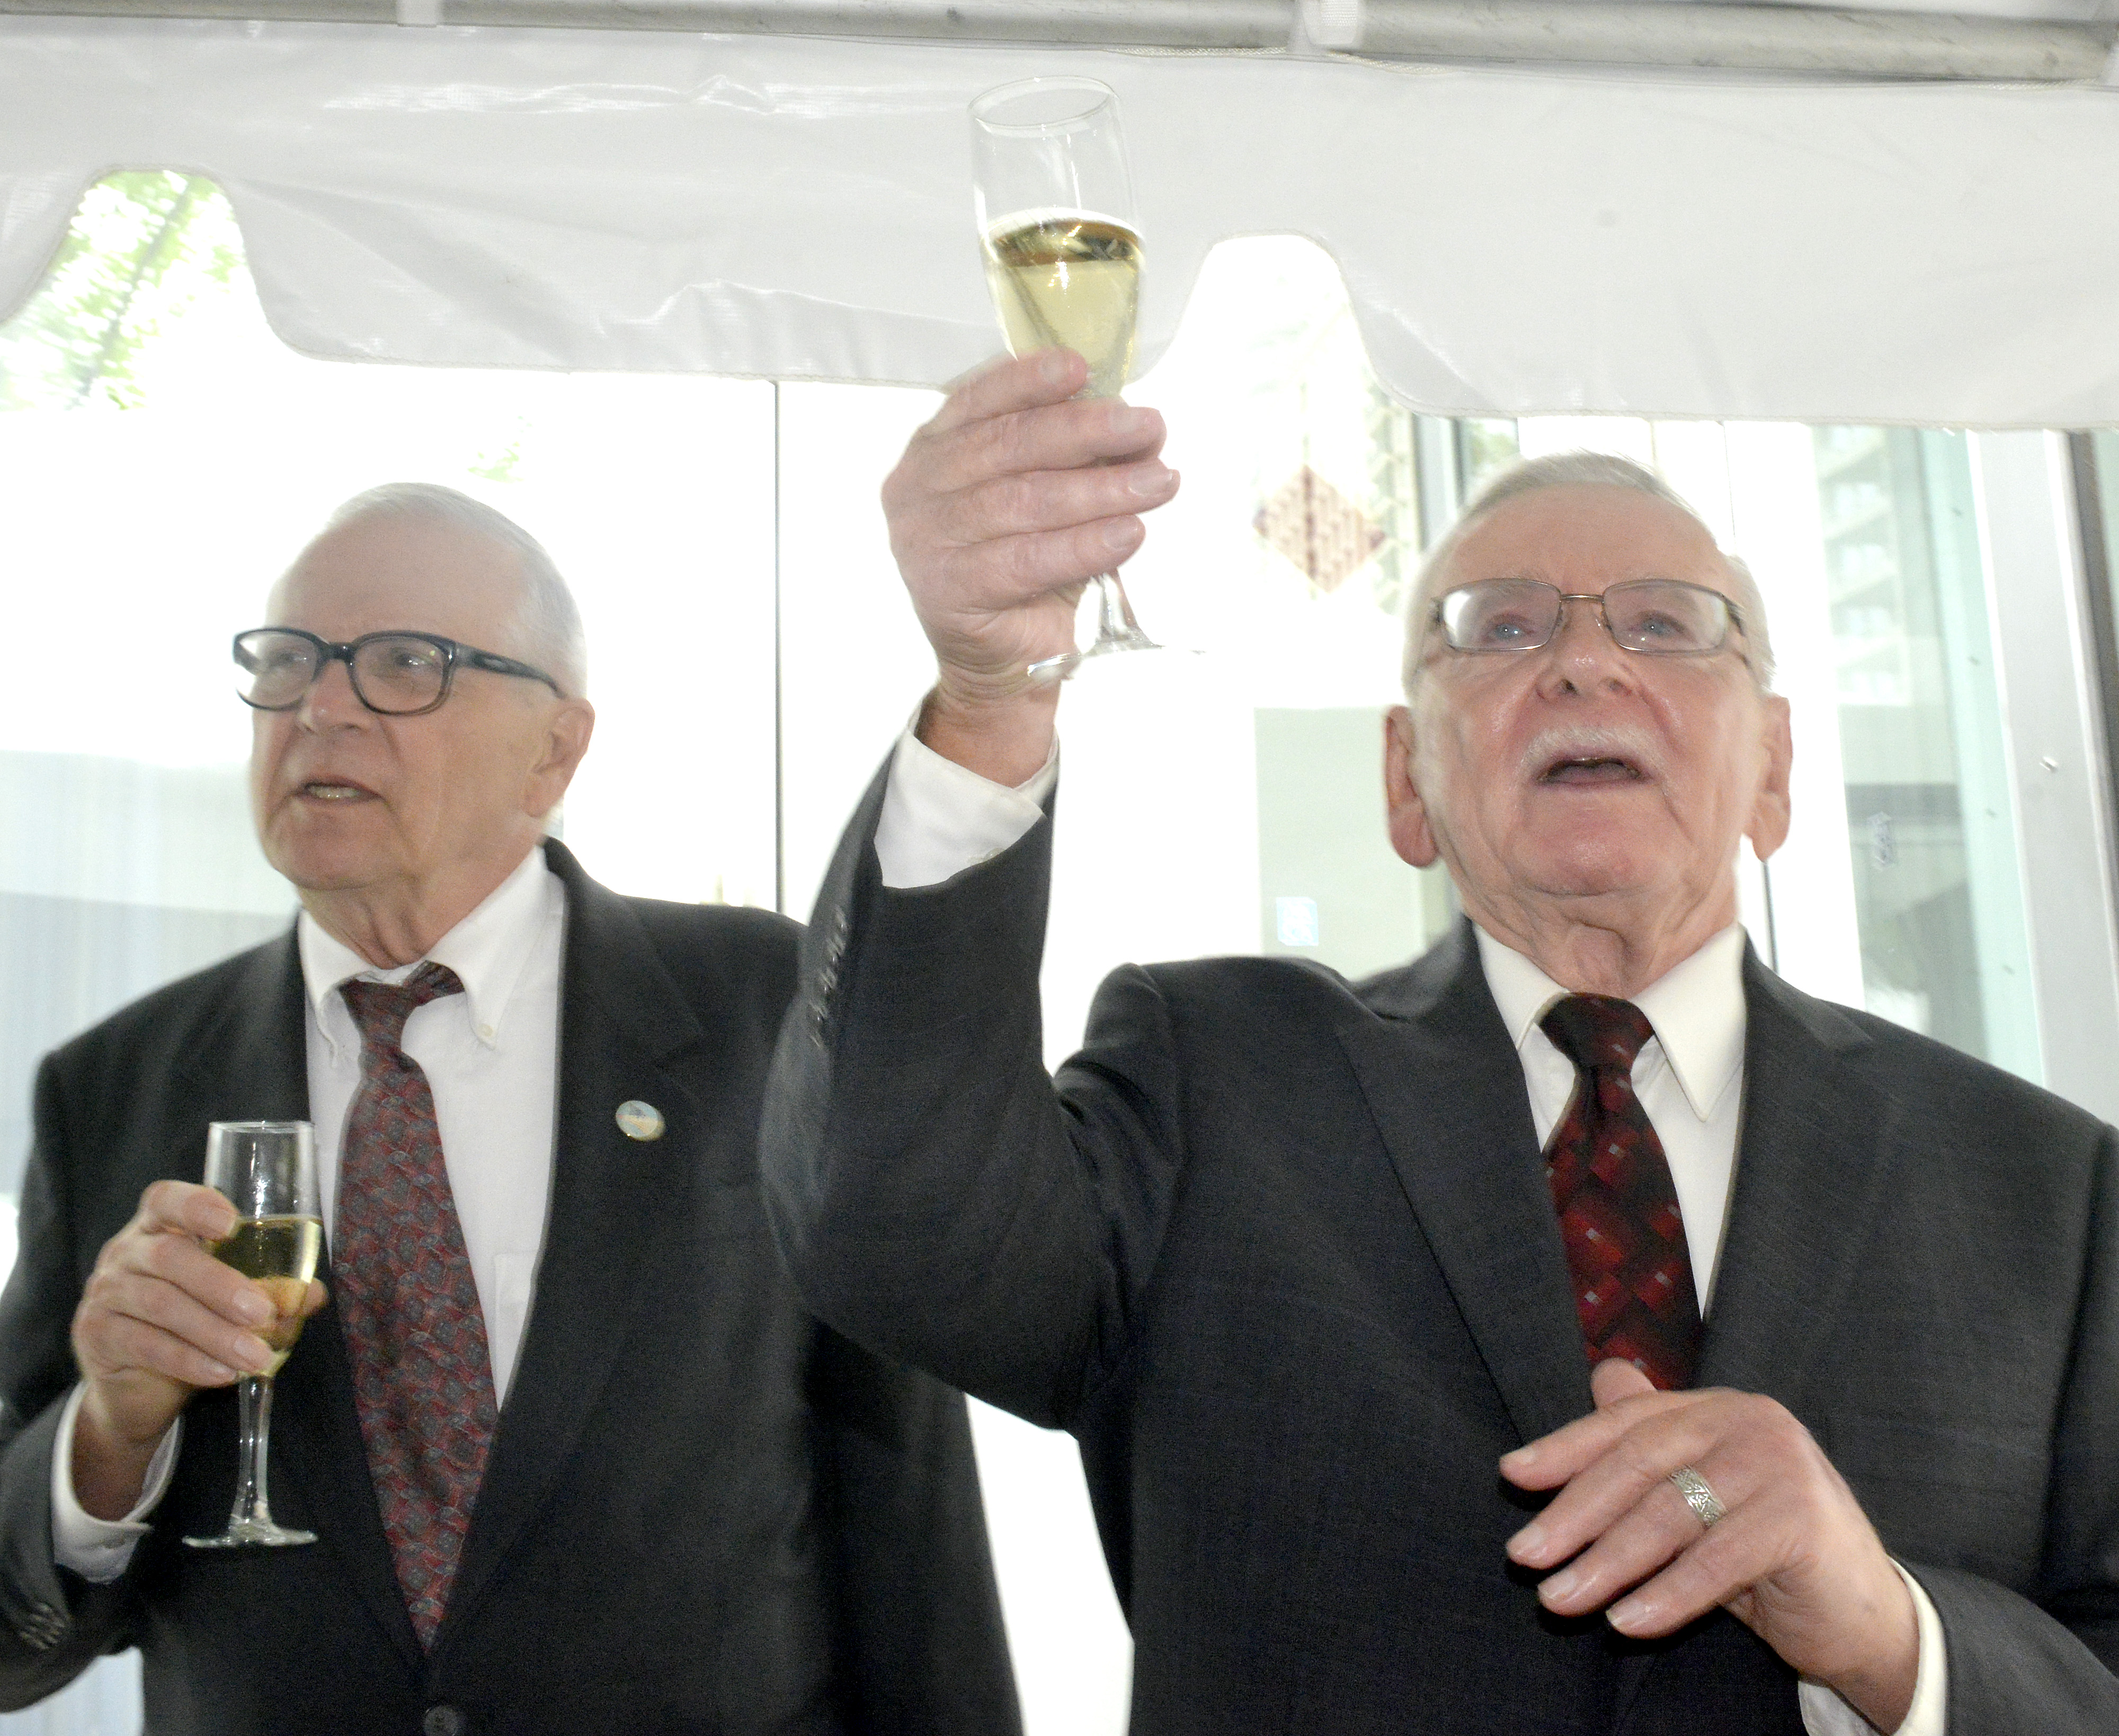 Patrick Bova, left, and James Darby celebrate with with a toast after their wedding in 2014